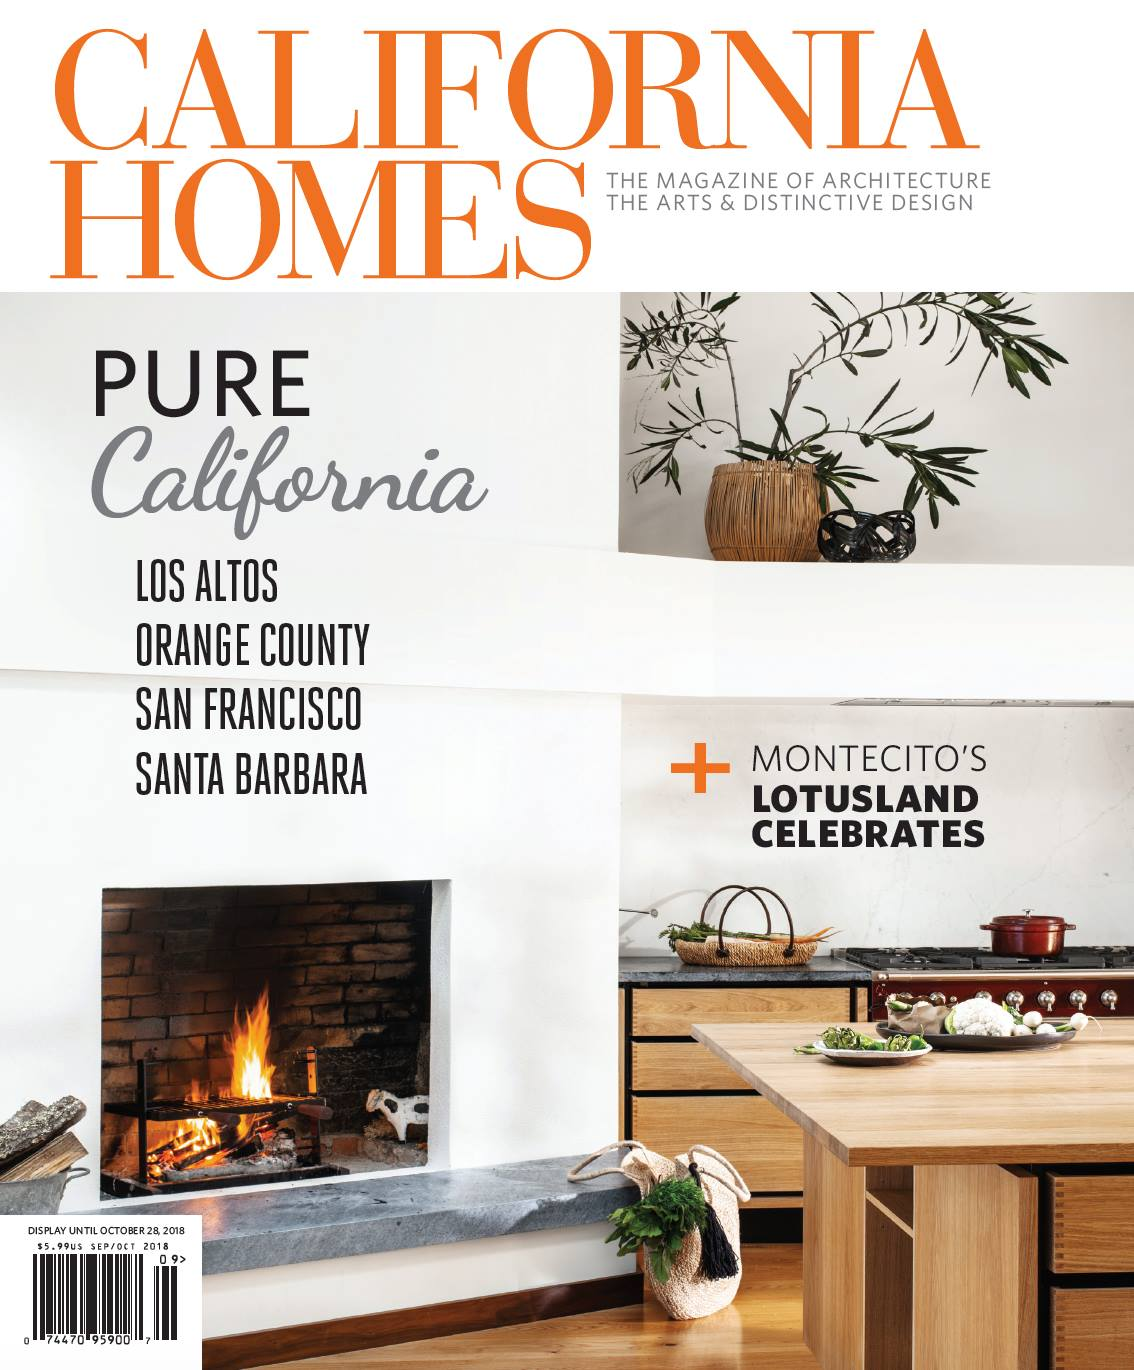 The cover of  California Homes